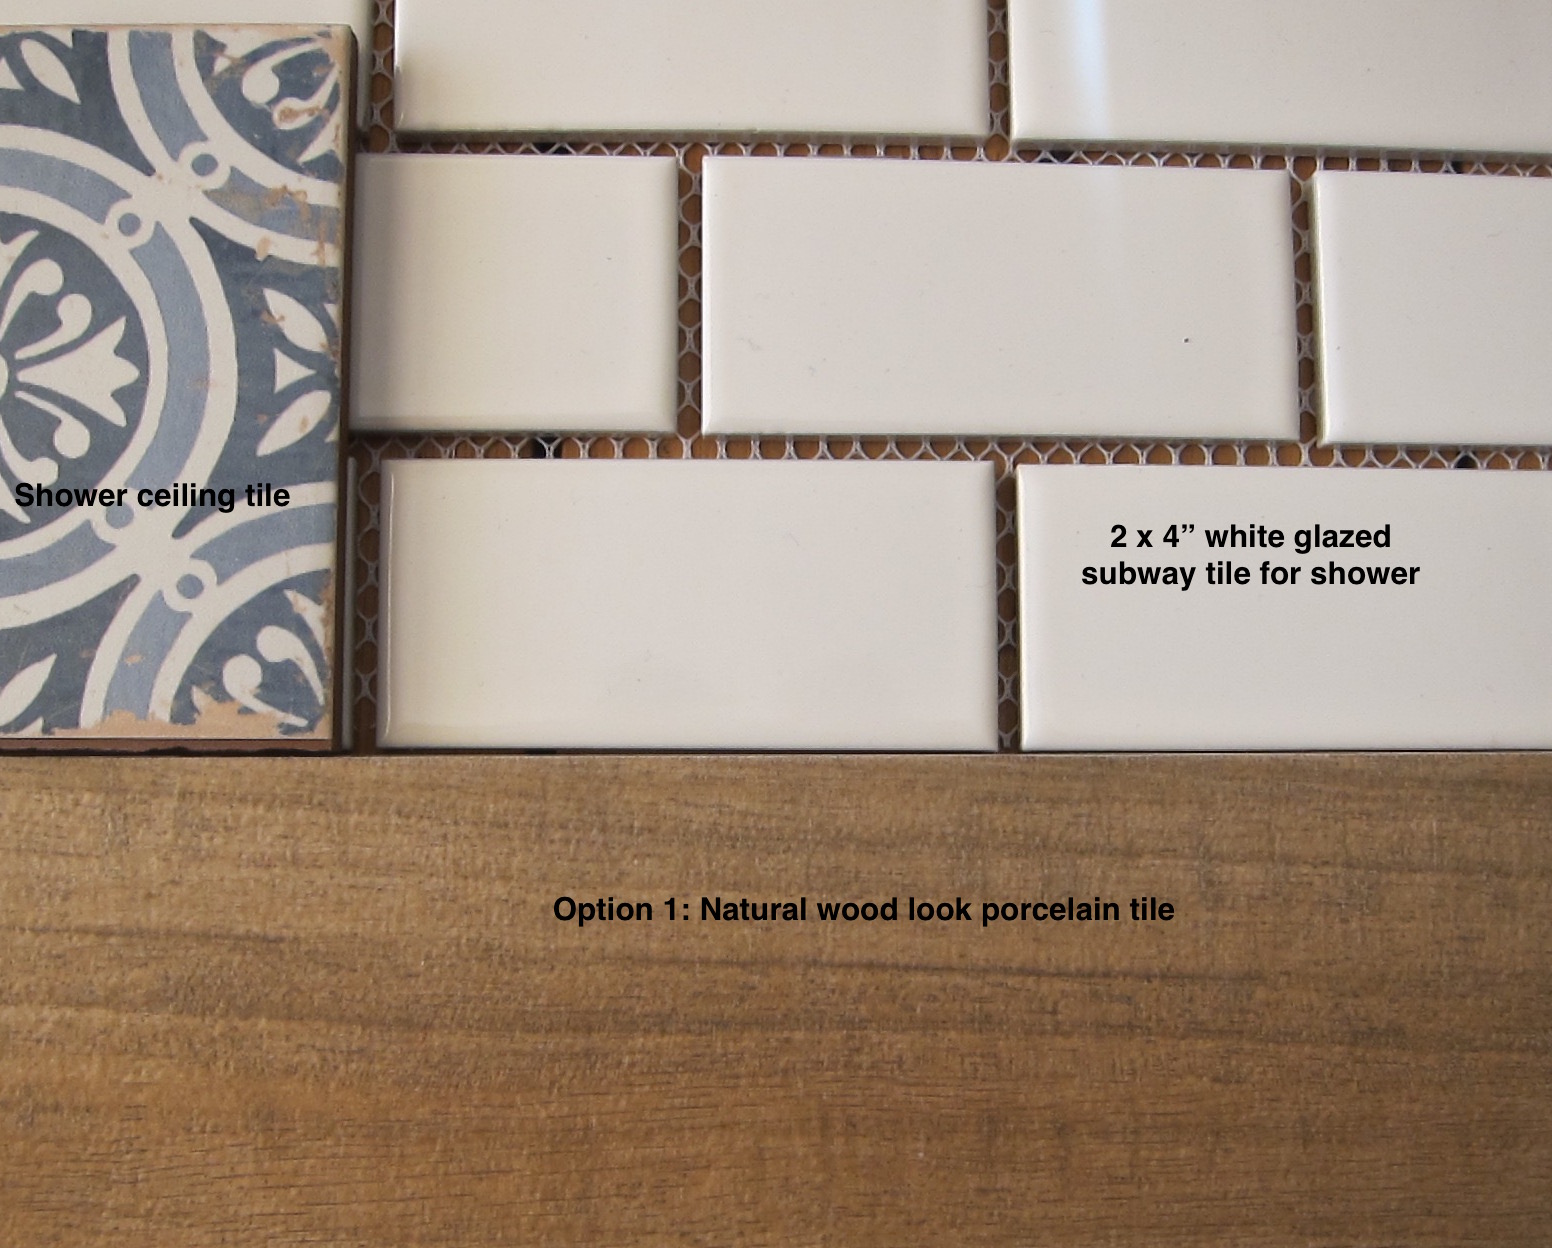 powder room - tile choices include Mediterranean pattern tile, 2 x 4 inch white subway tile and wood-look porcelain floor tile - Atticmag